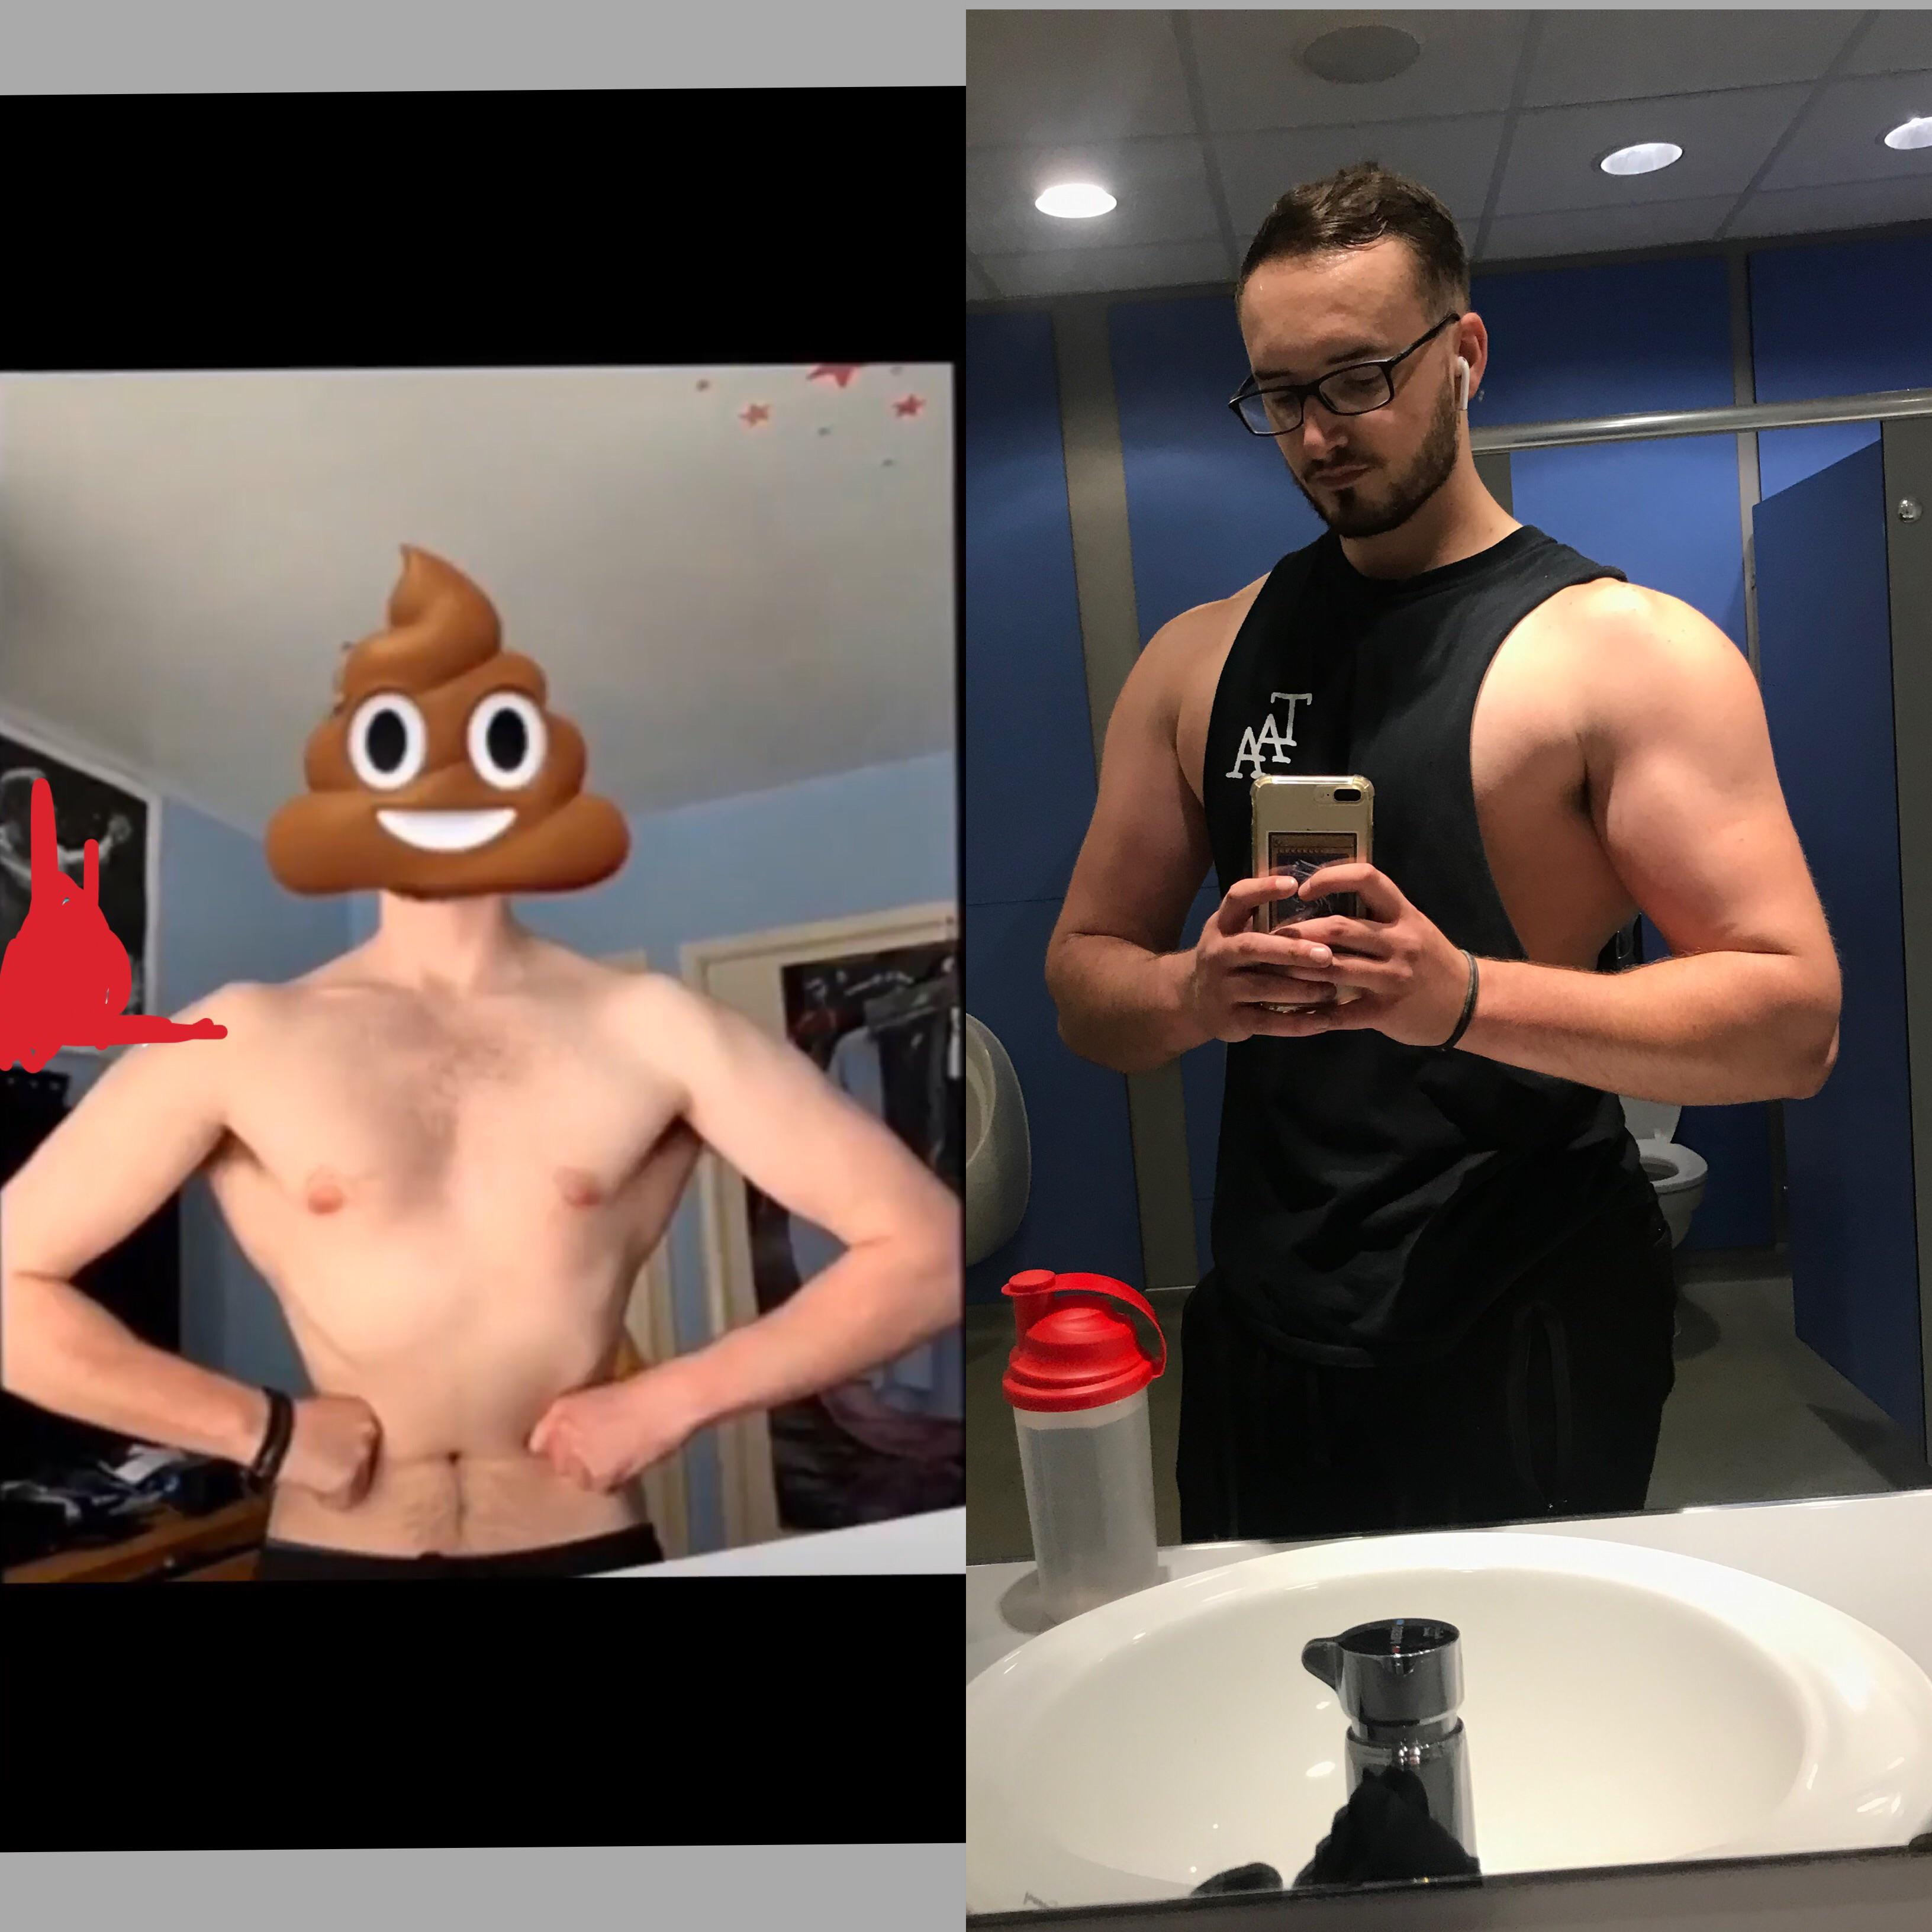 6 foot 4 Male Before and After 47 lbs Muscle Gain 169 lbs to 216 lbs